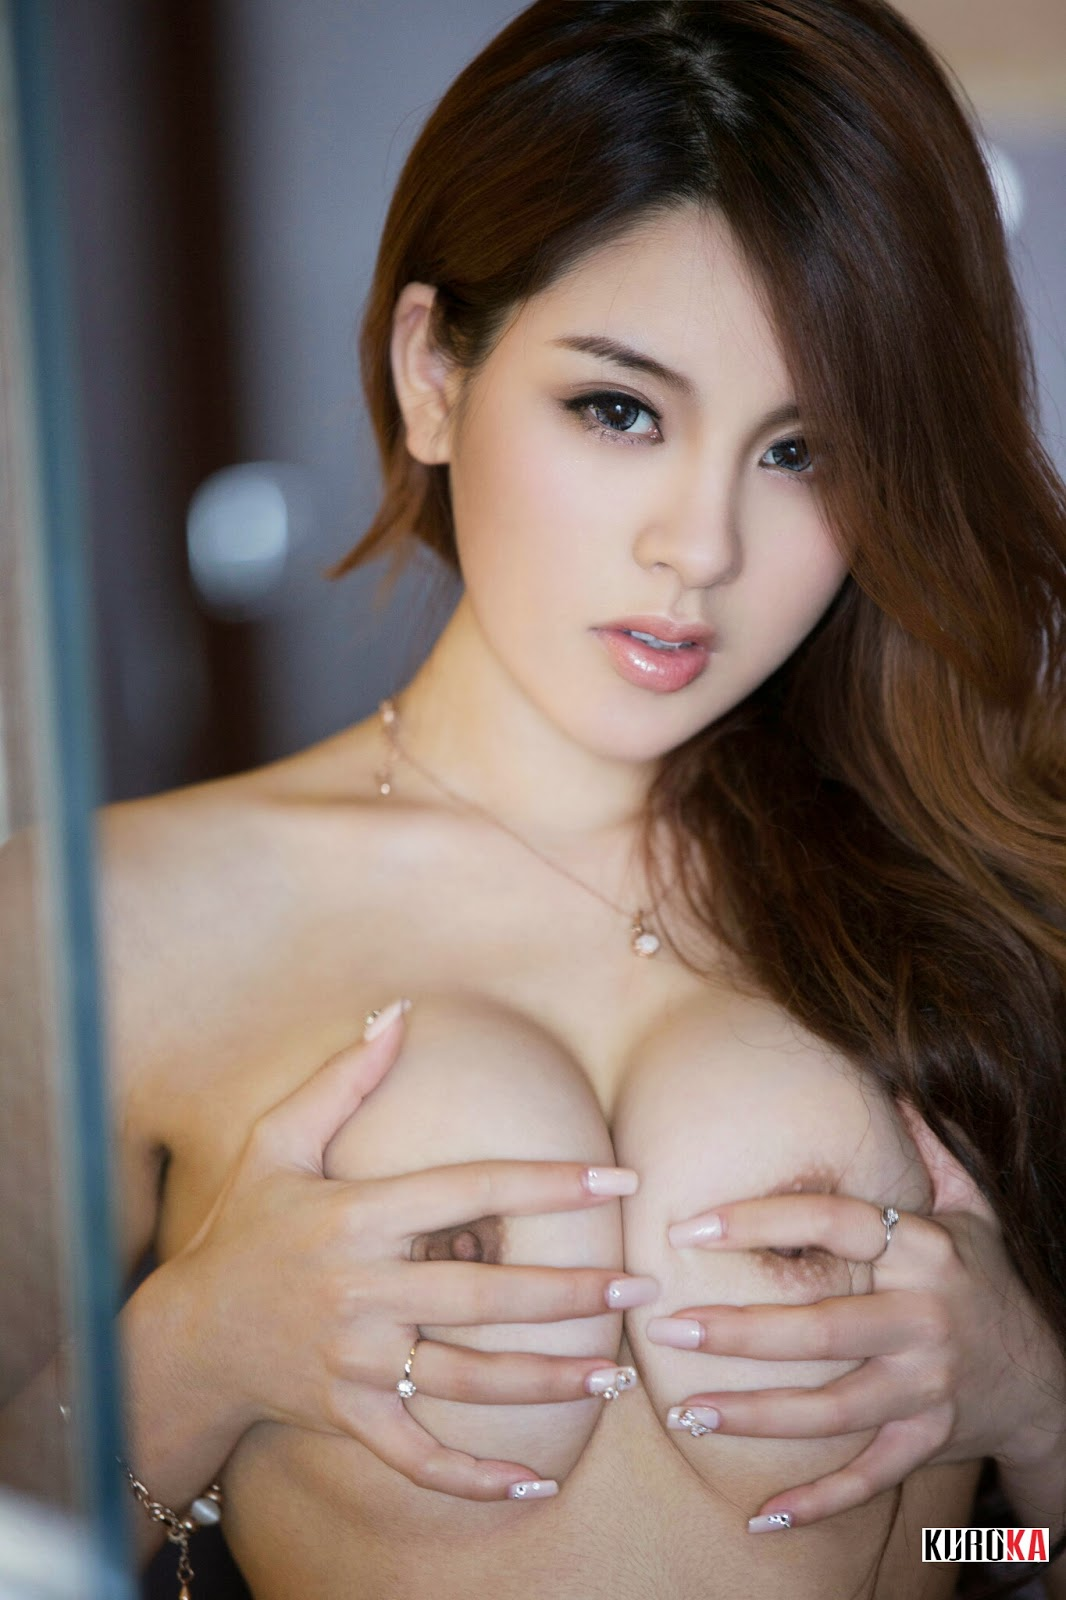 Zhao Wei Hot Naked Babe [35 pic] | Kurokara - Hot Asian Models